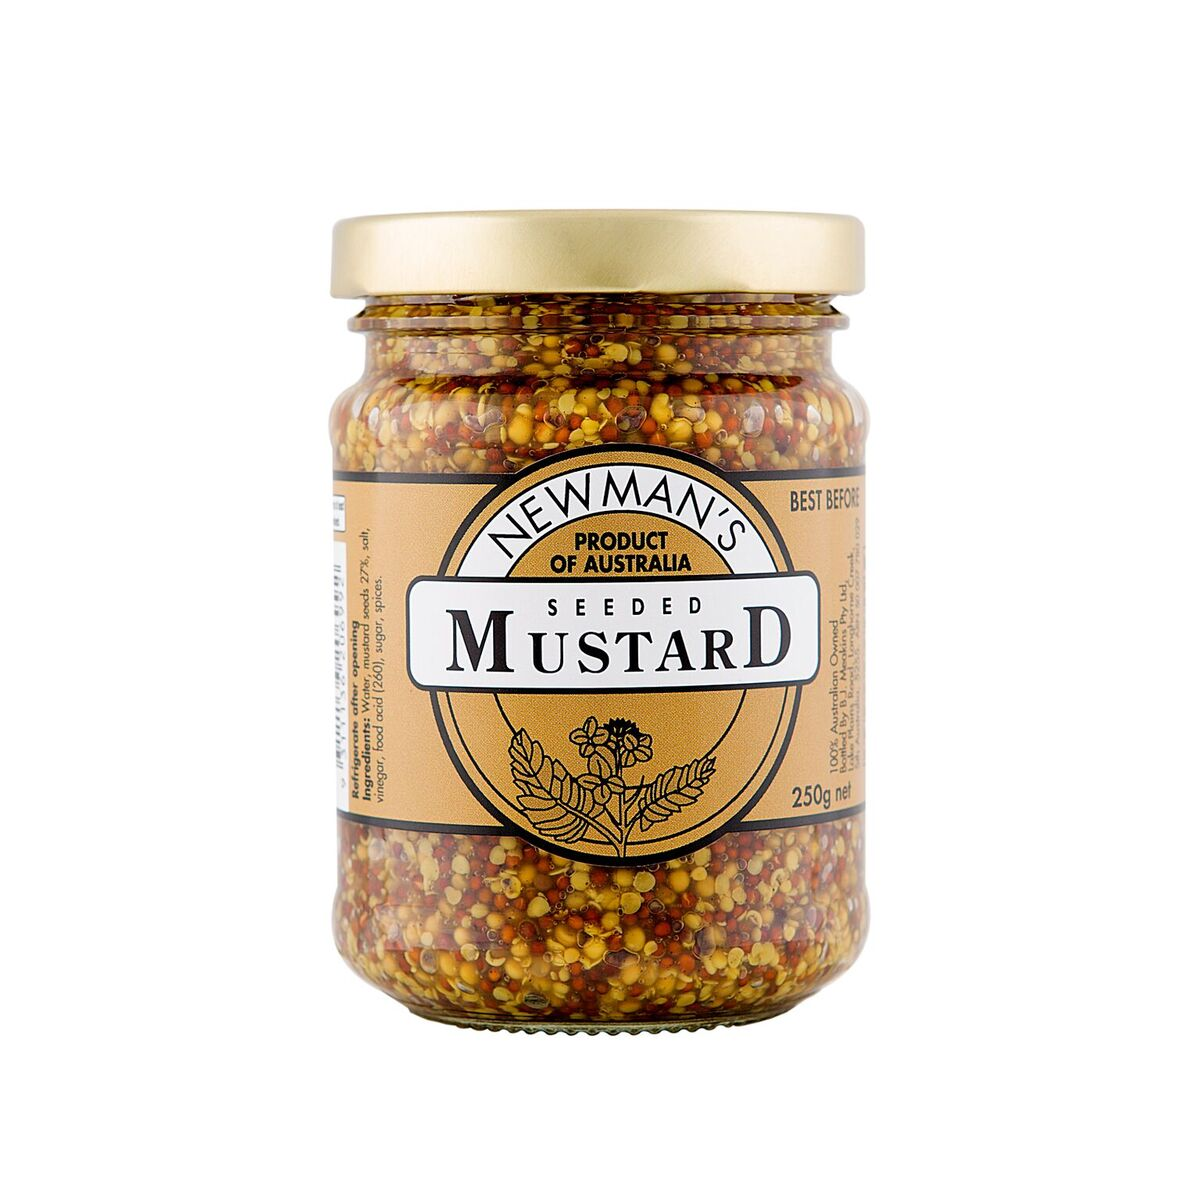 Newman's Mustard Seeded 250g